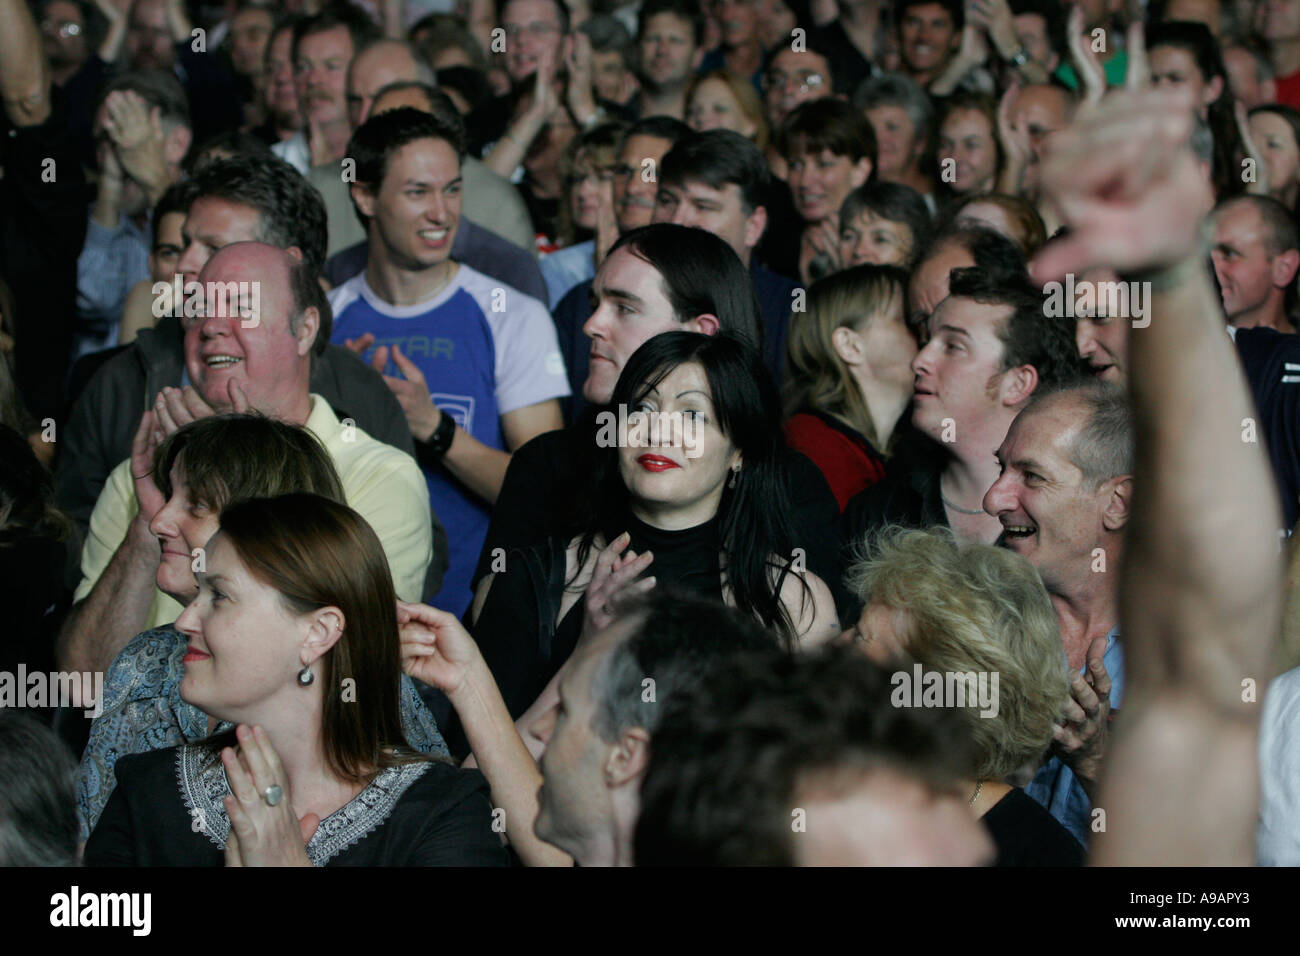 Music lovers at concert - Stock Image